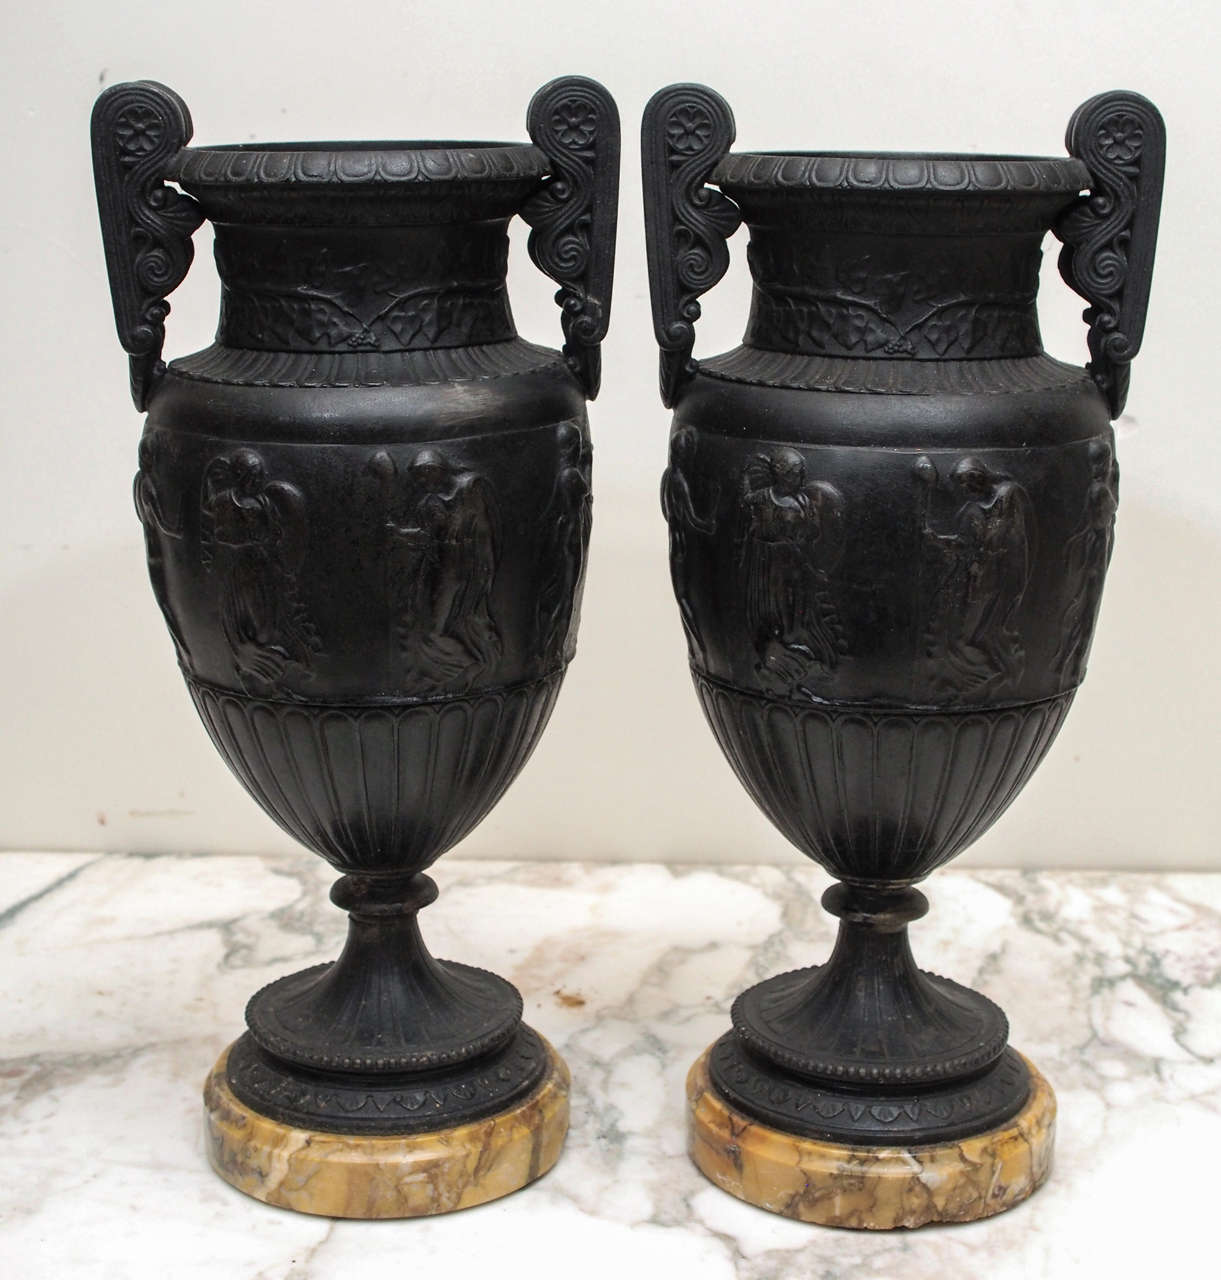 French 19th c. Patinated Bronze Classical Grand Tour Vases on Sienna Marble Bases